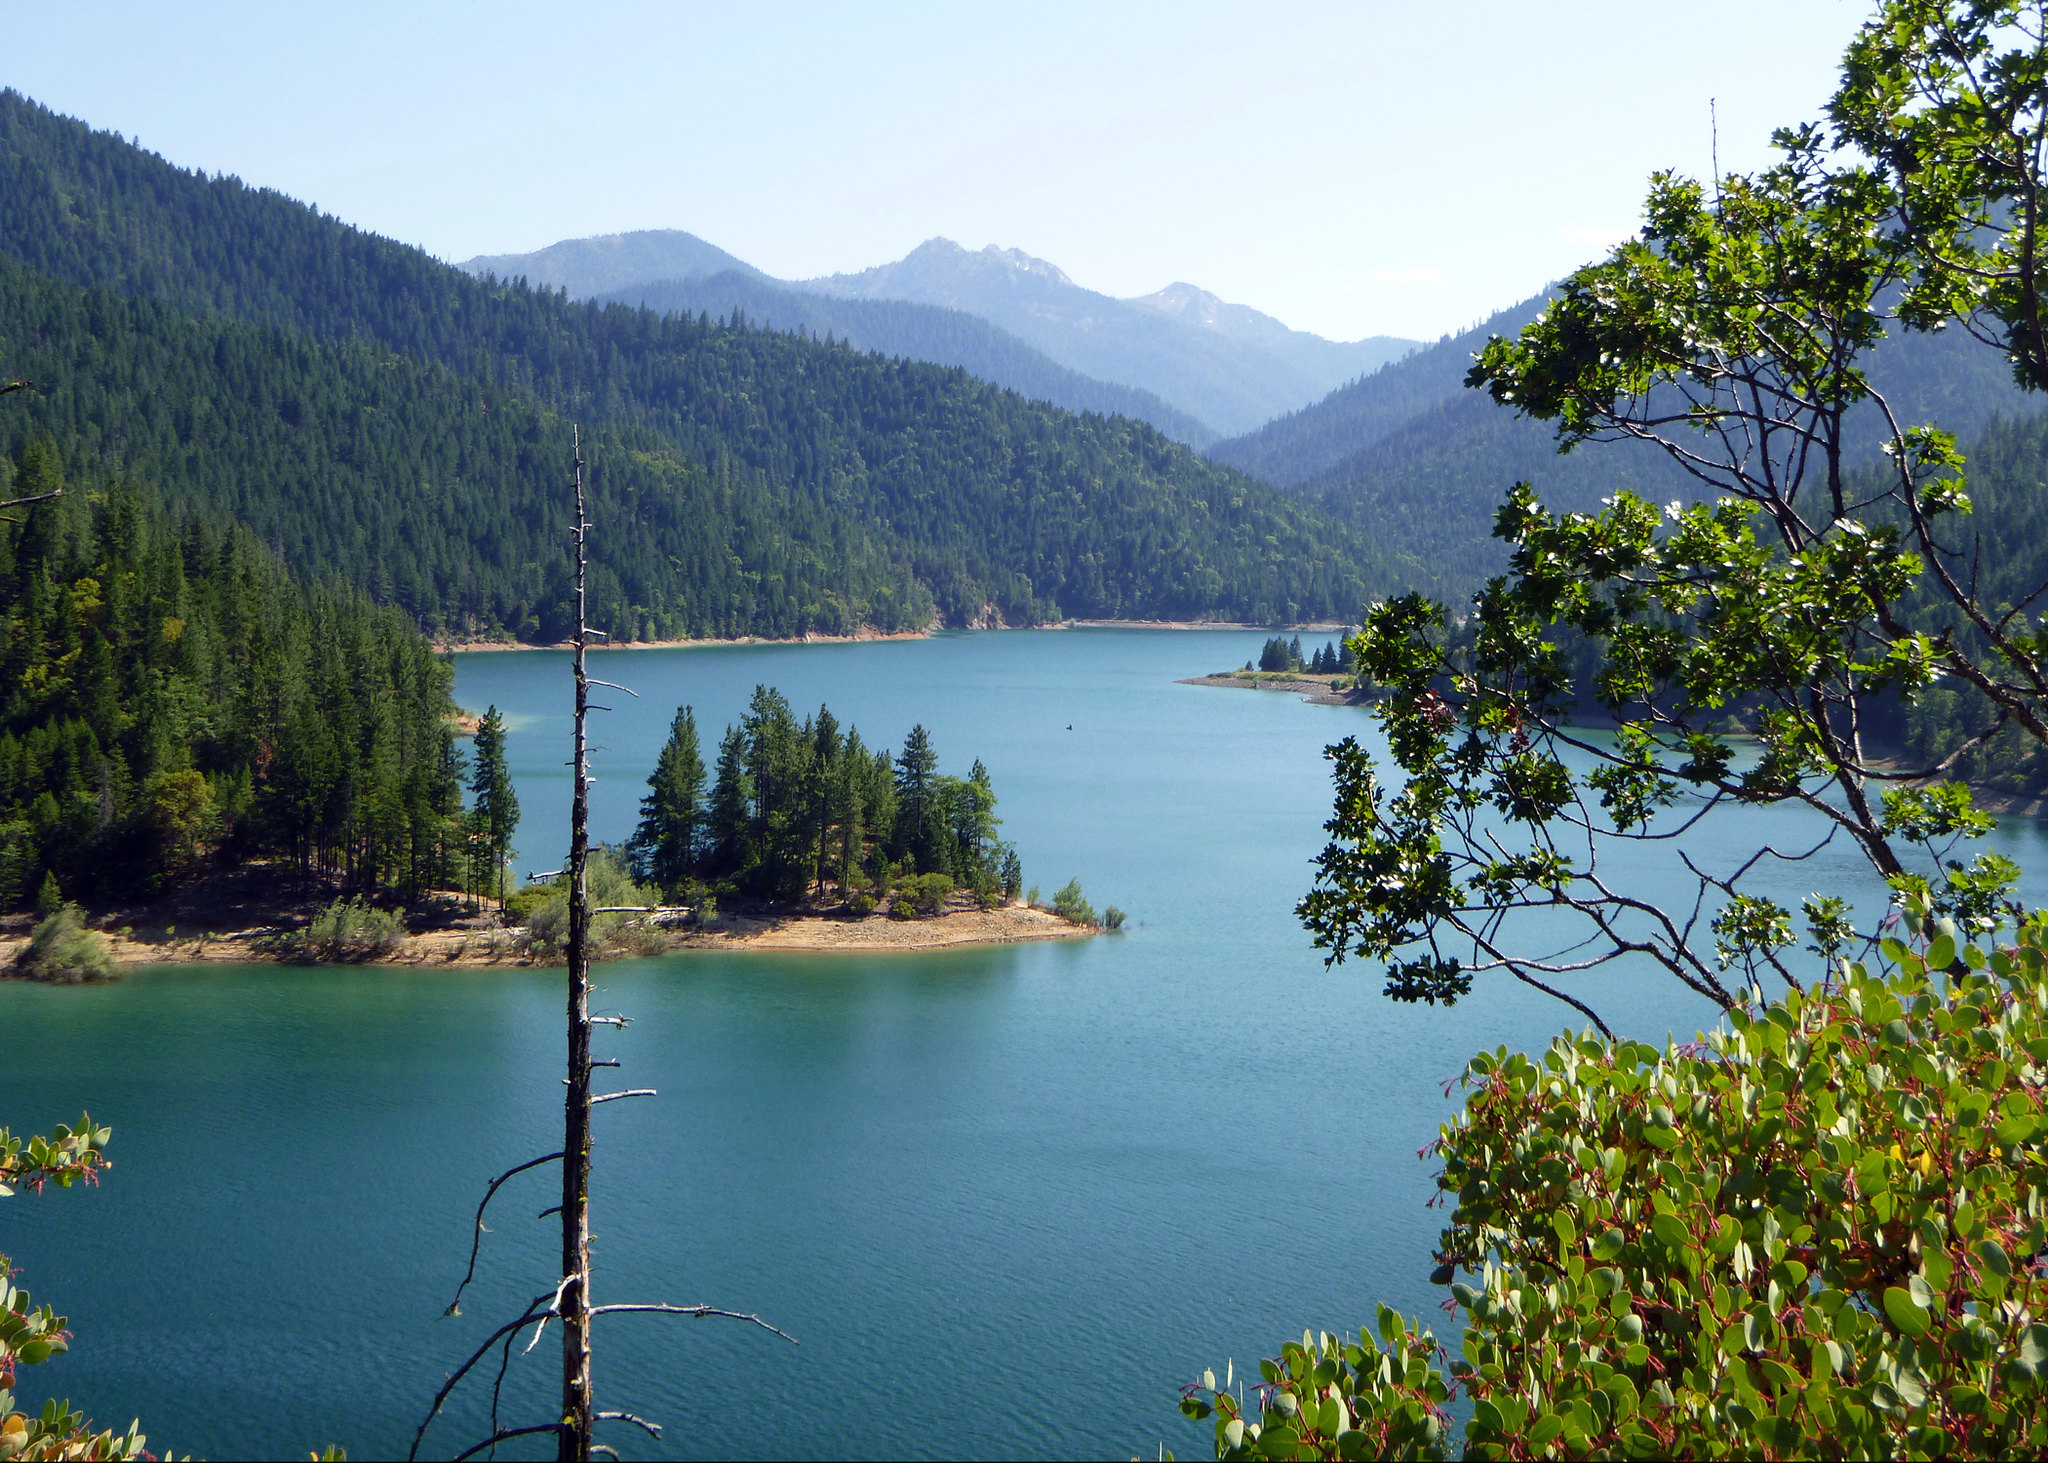 Applegate Reservoir in the Siskiyou Mountains within the Rogue River-Siskiyou National Forest